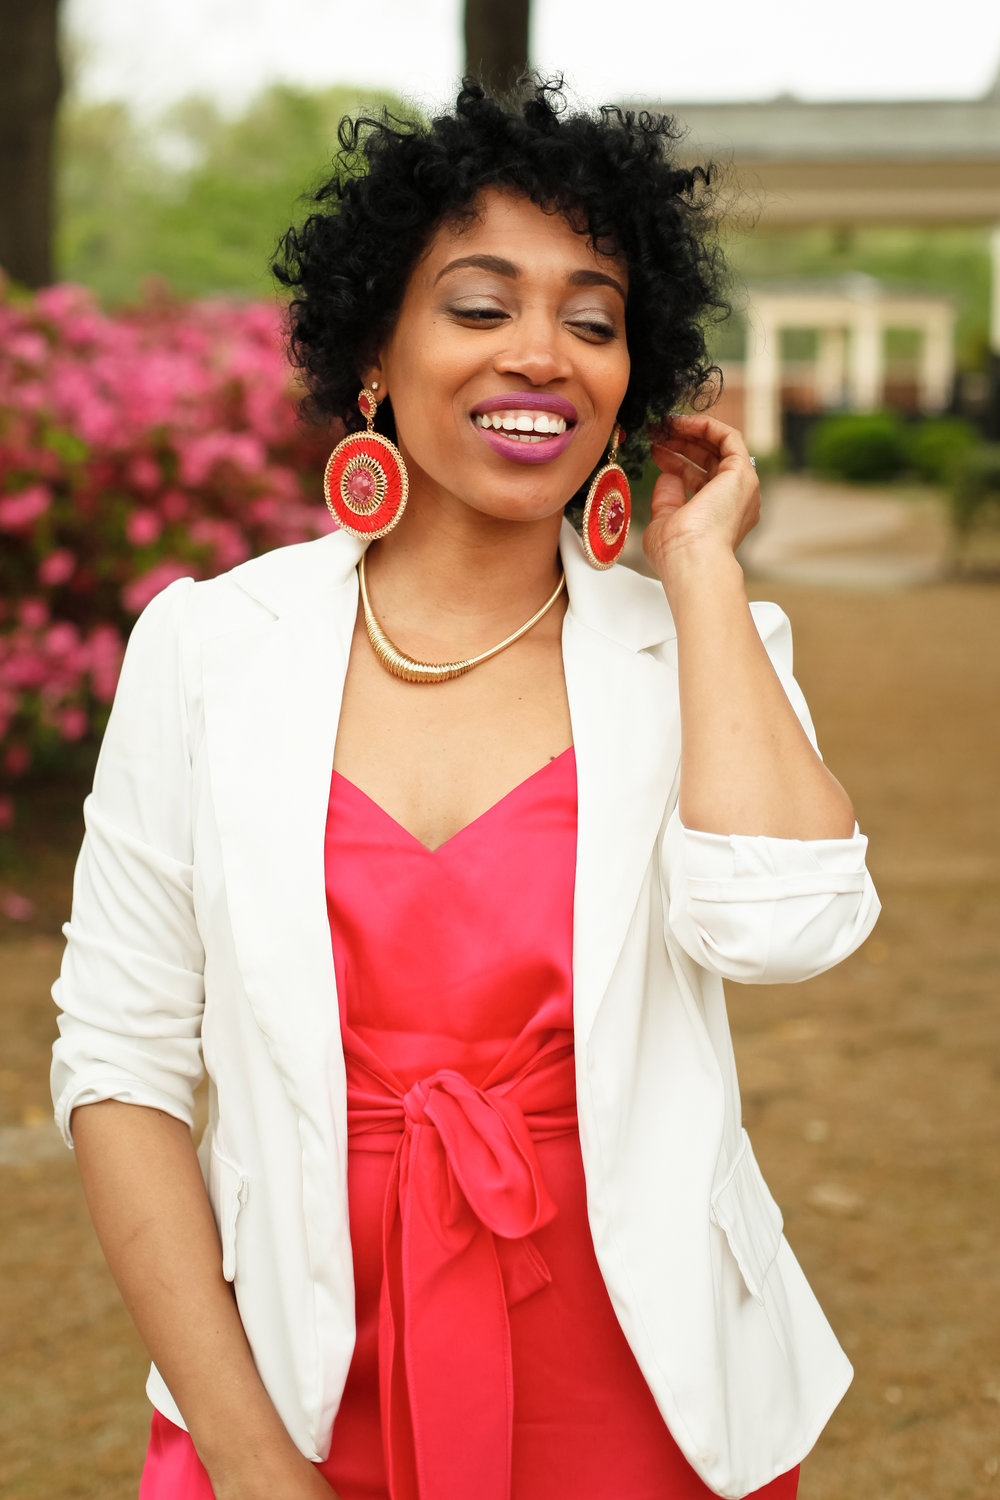 Andrea Fenise Memphis Fashion Blogger shares new beginnings with website change